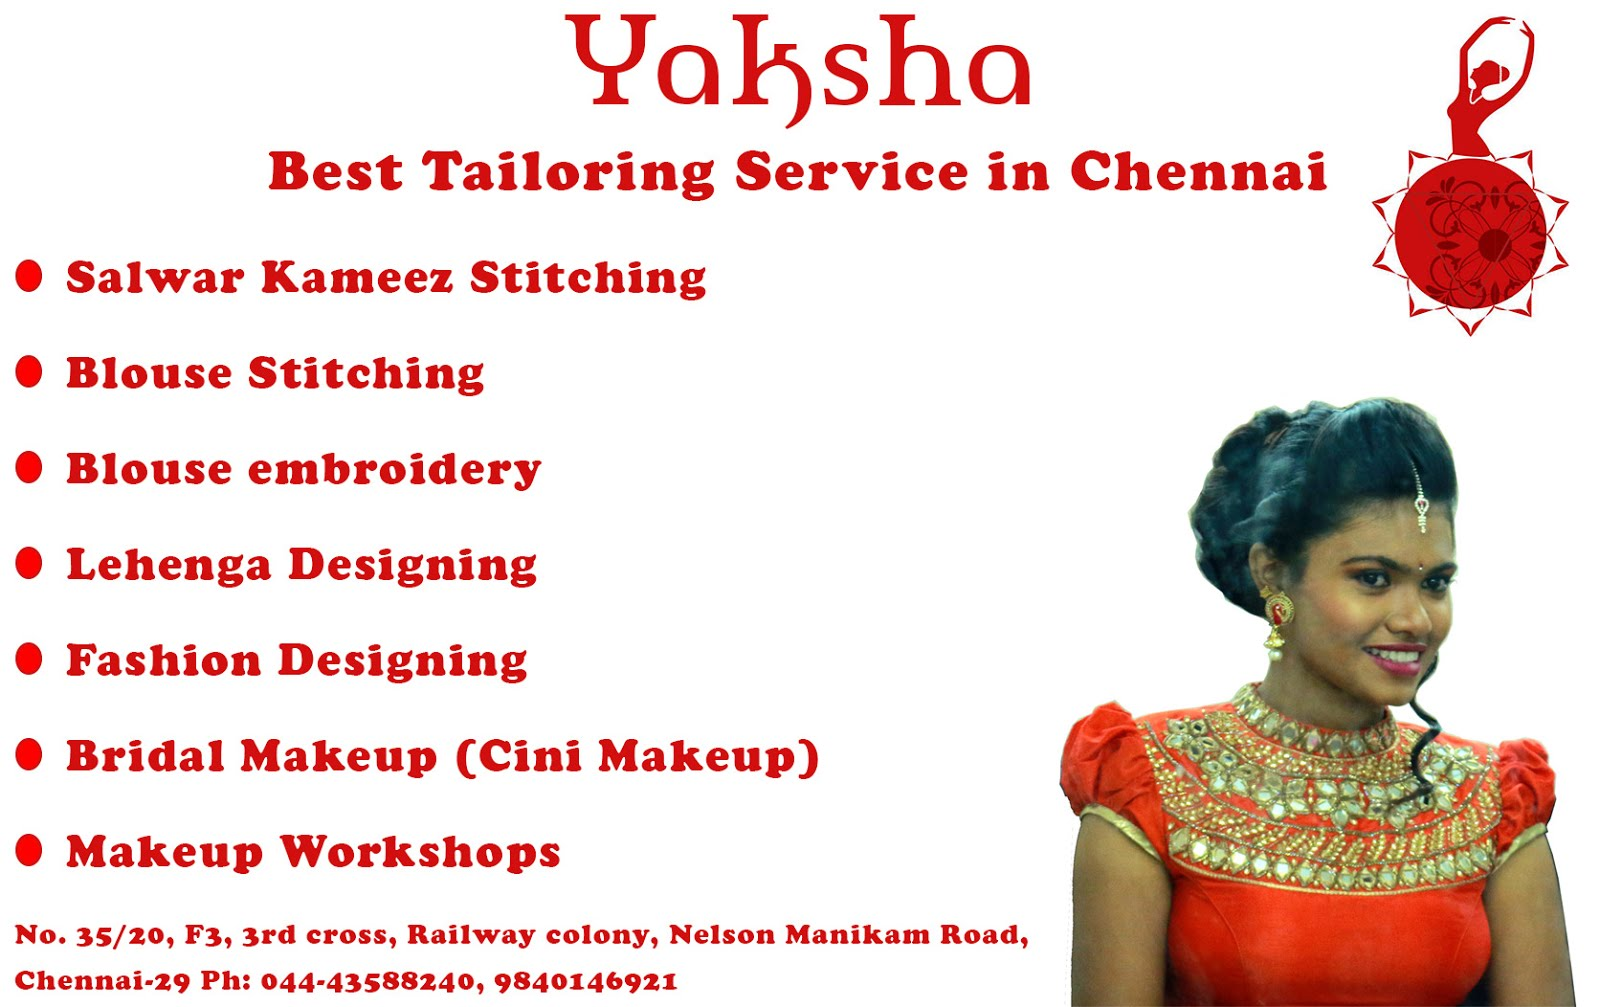 Tailoring Service in chennai call 9840146921